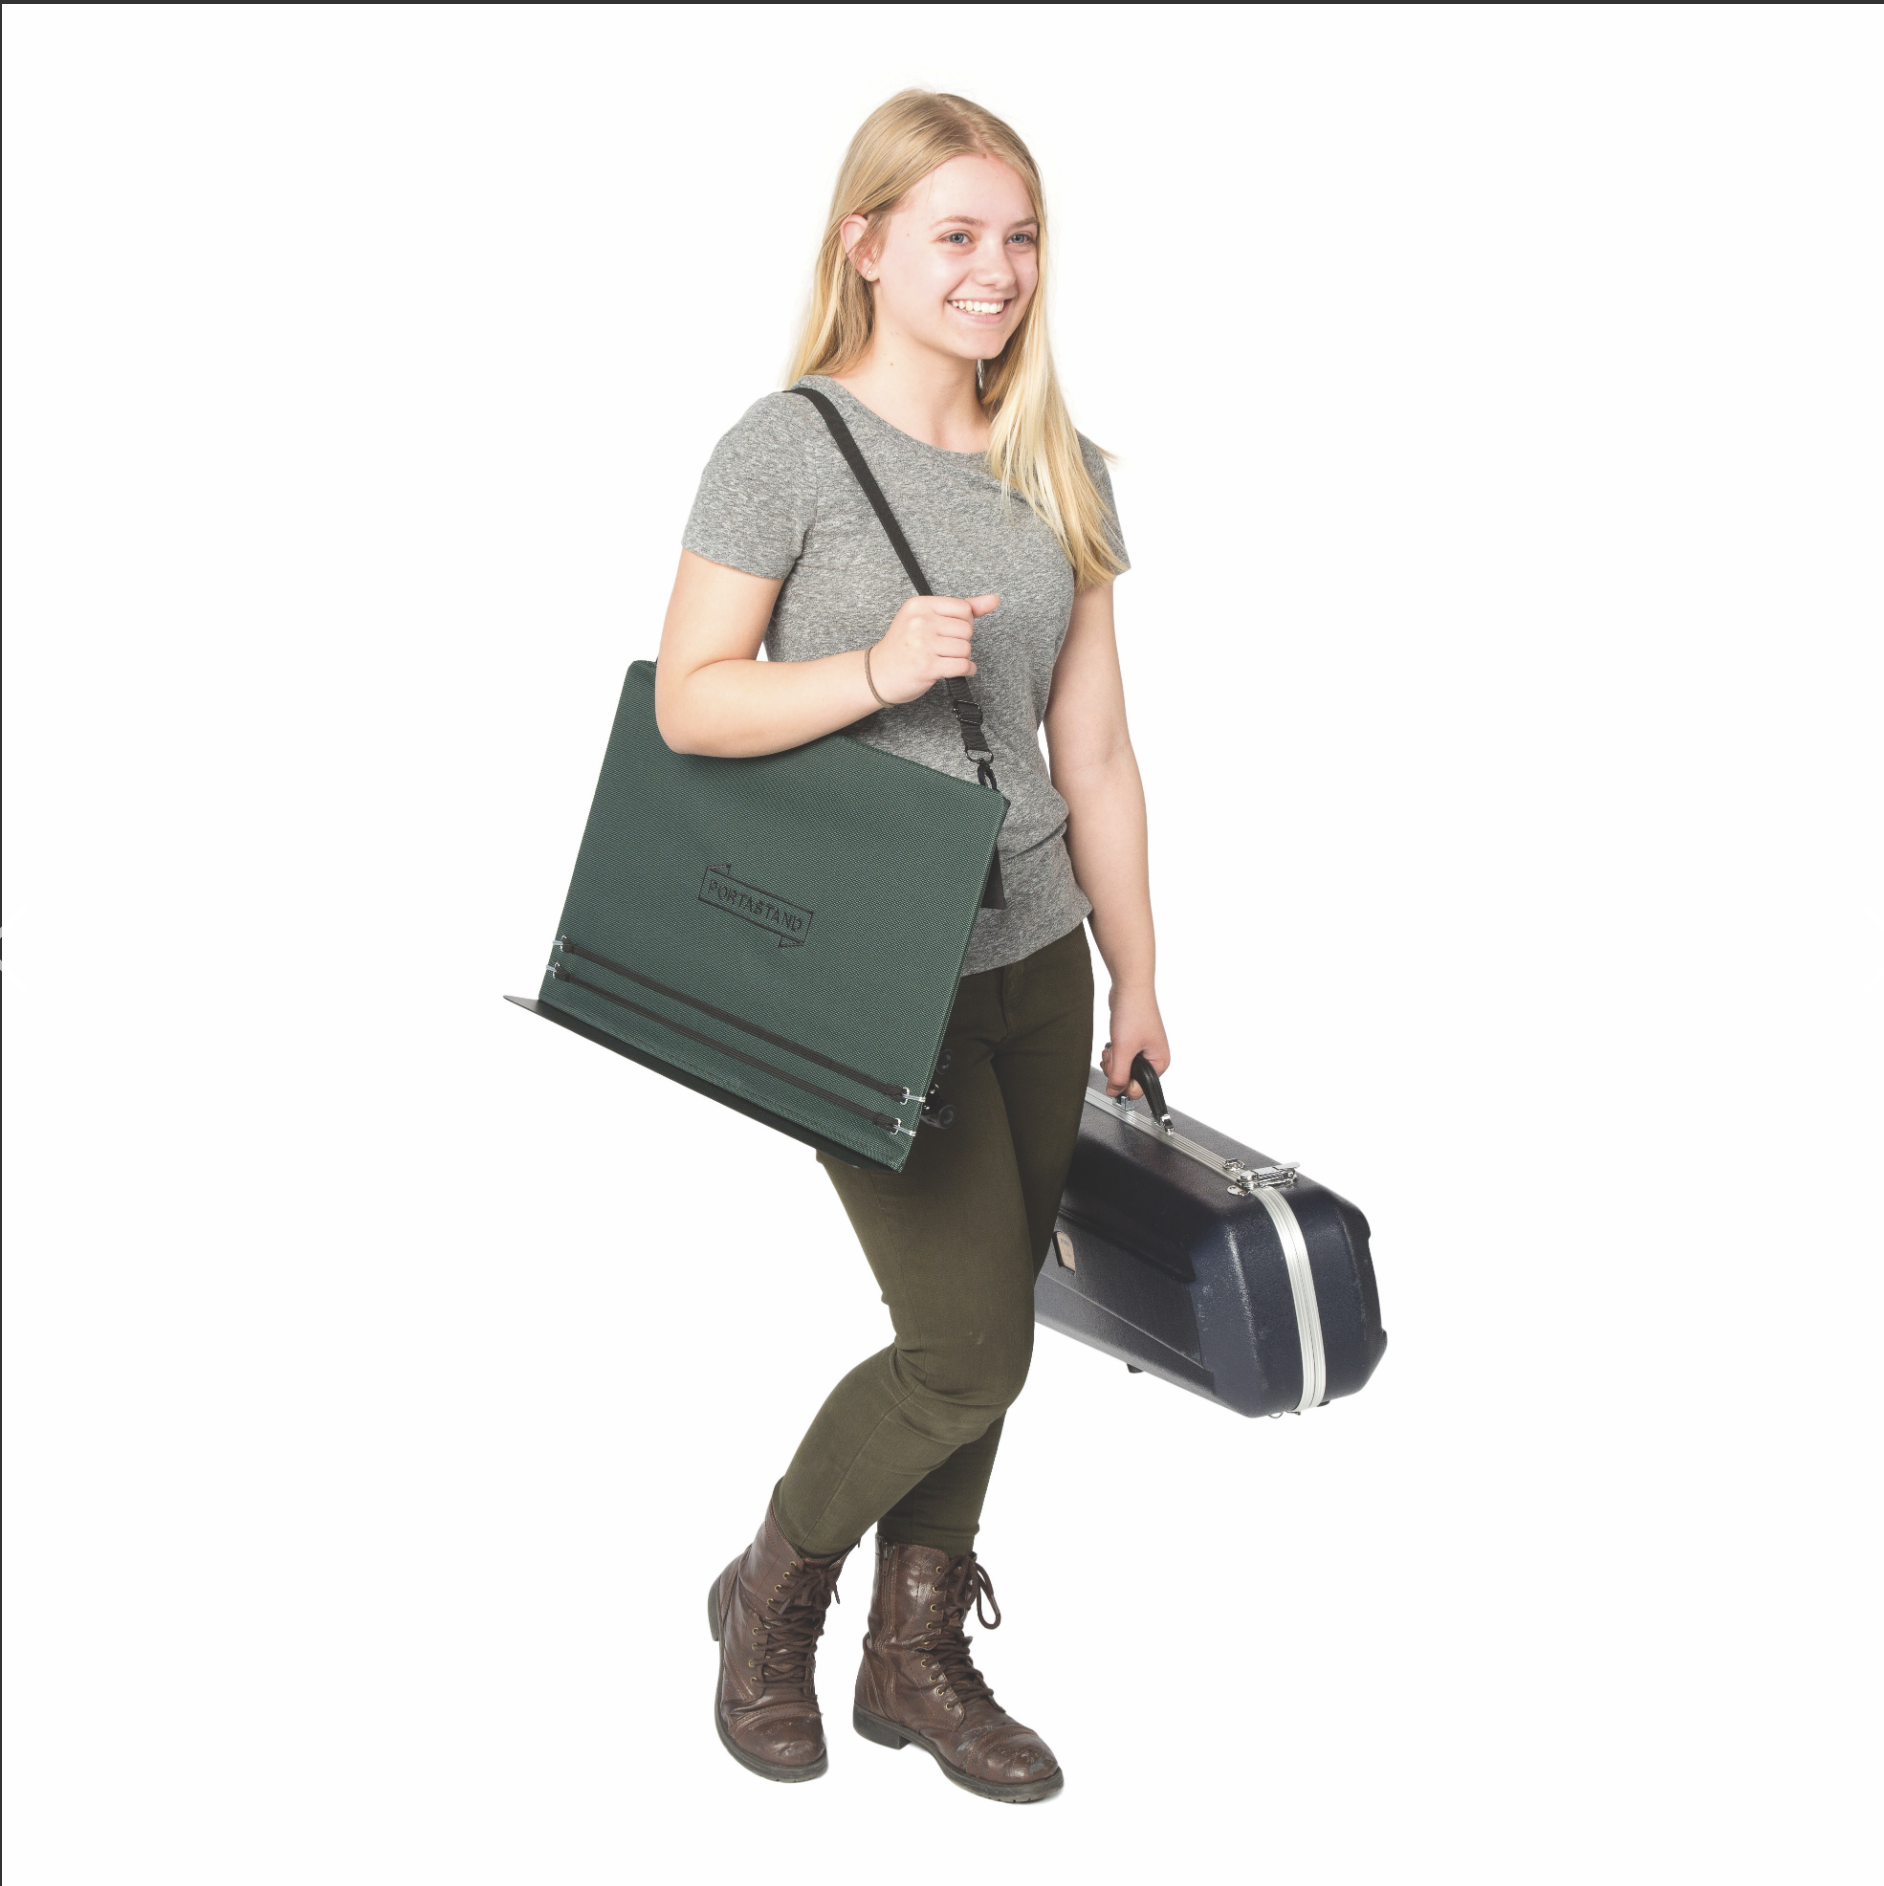 Portastand Portastand Troubadour 2.0 collapsible solid desk music stand with carrying bag,